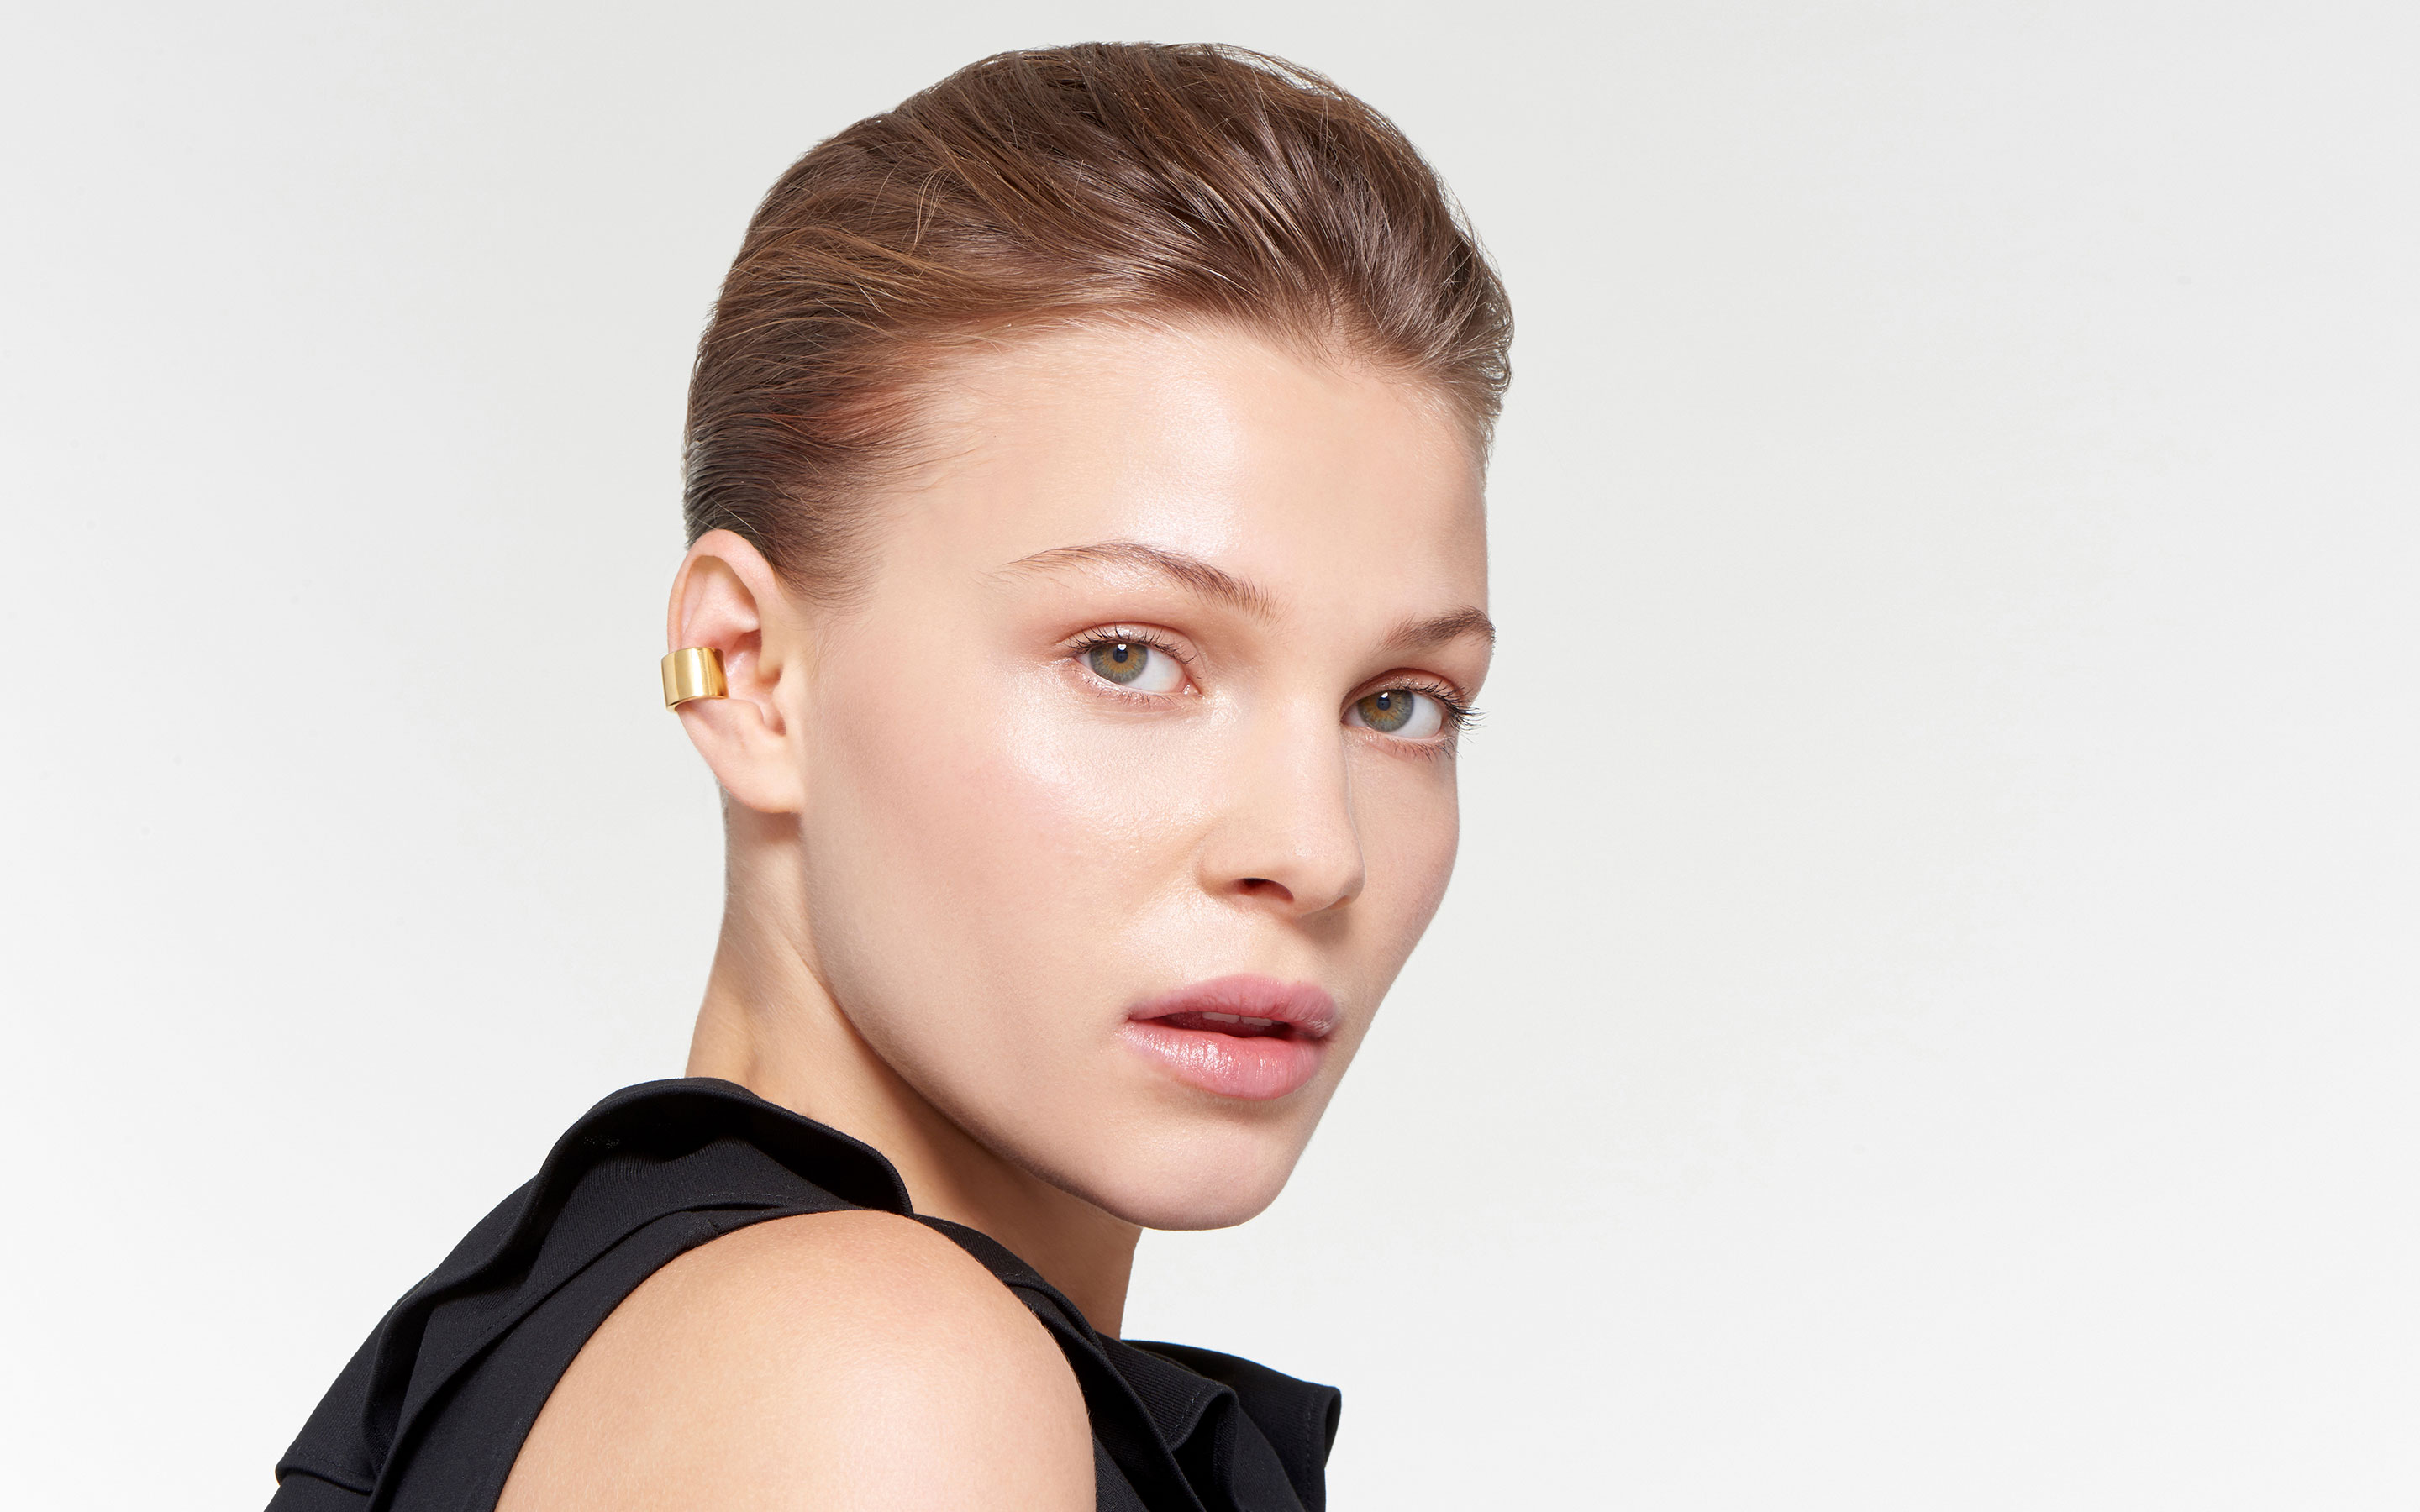 stylish model highlighting golden ear cuff fashioned of 22 karat gold